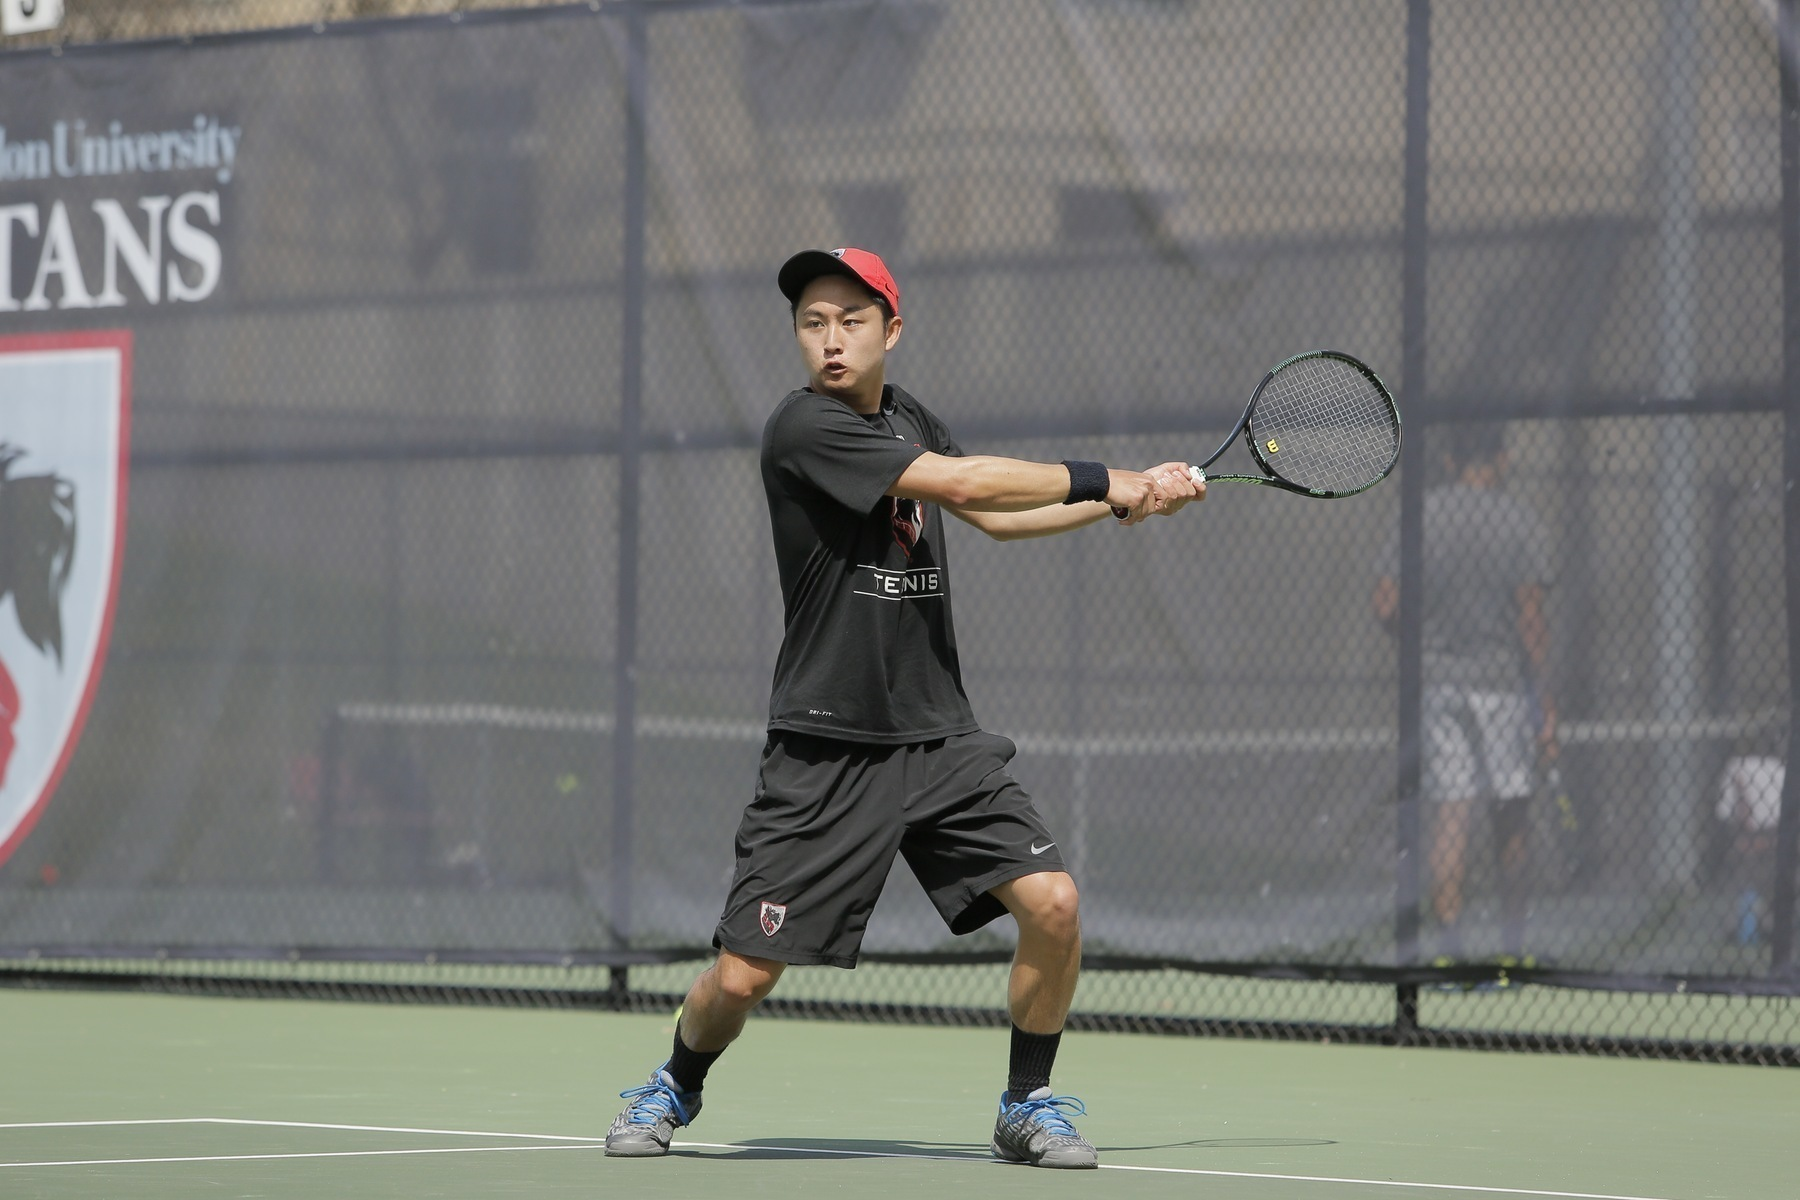 Senior Kenny Zheng's court efforts were not enough to triumph over Chicago in the third place match. (credit: CMU Athletics)